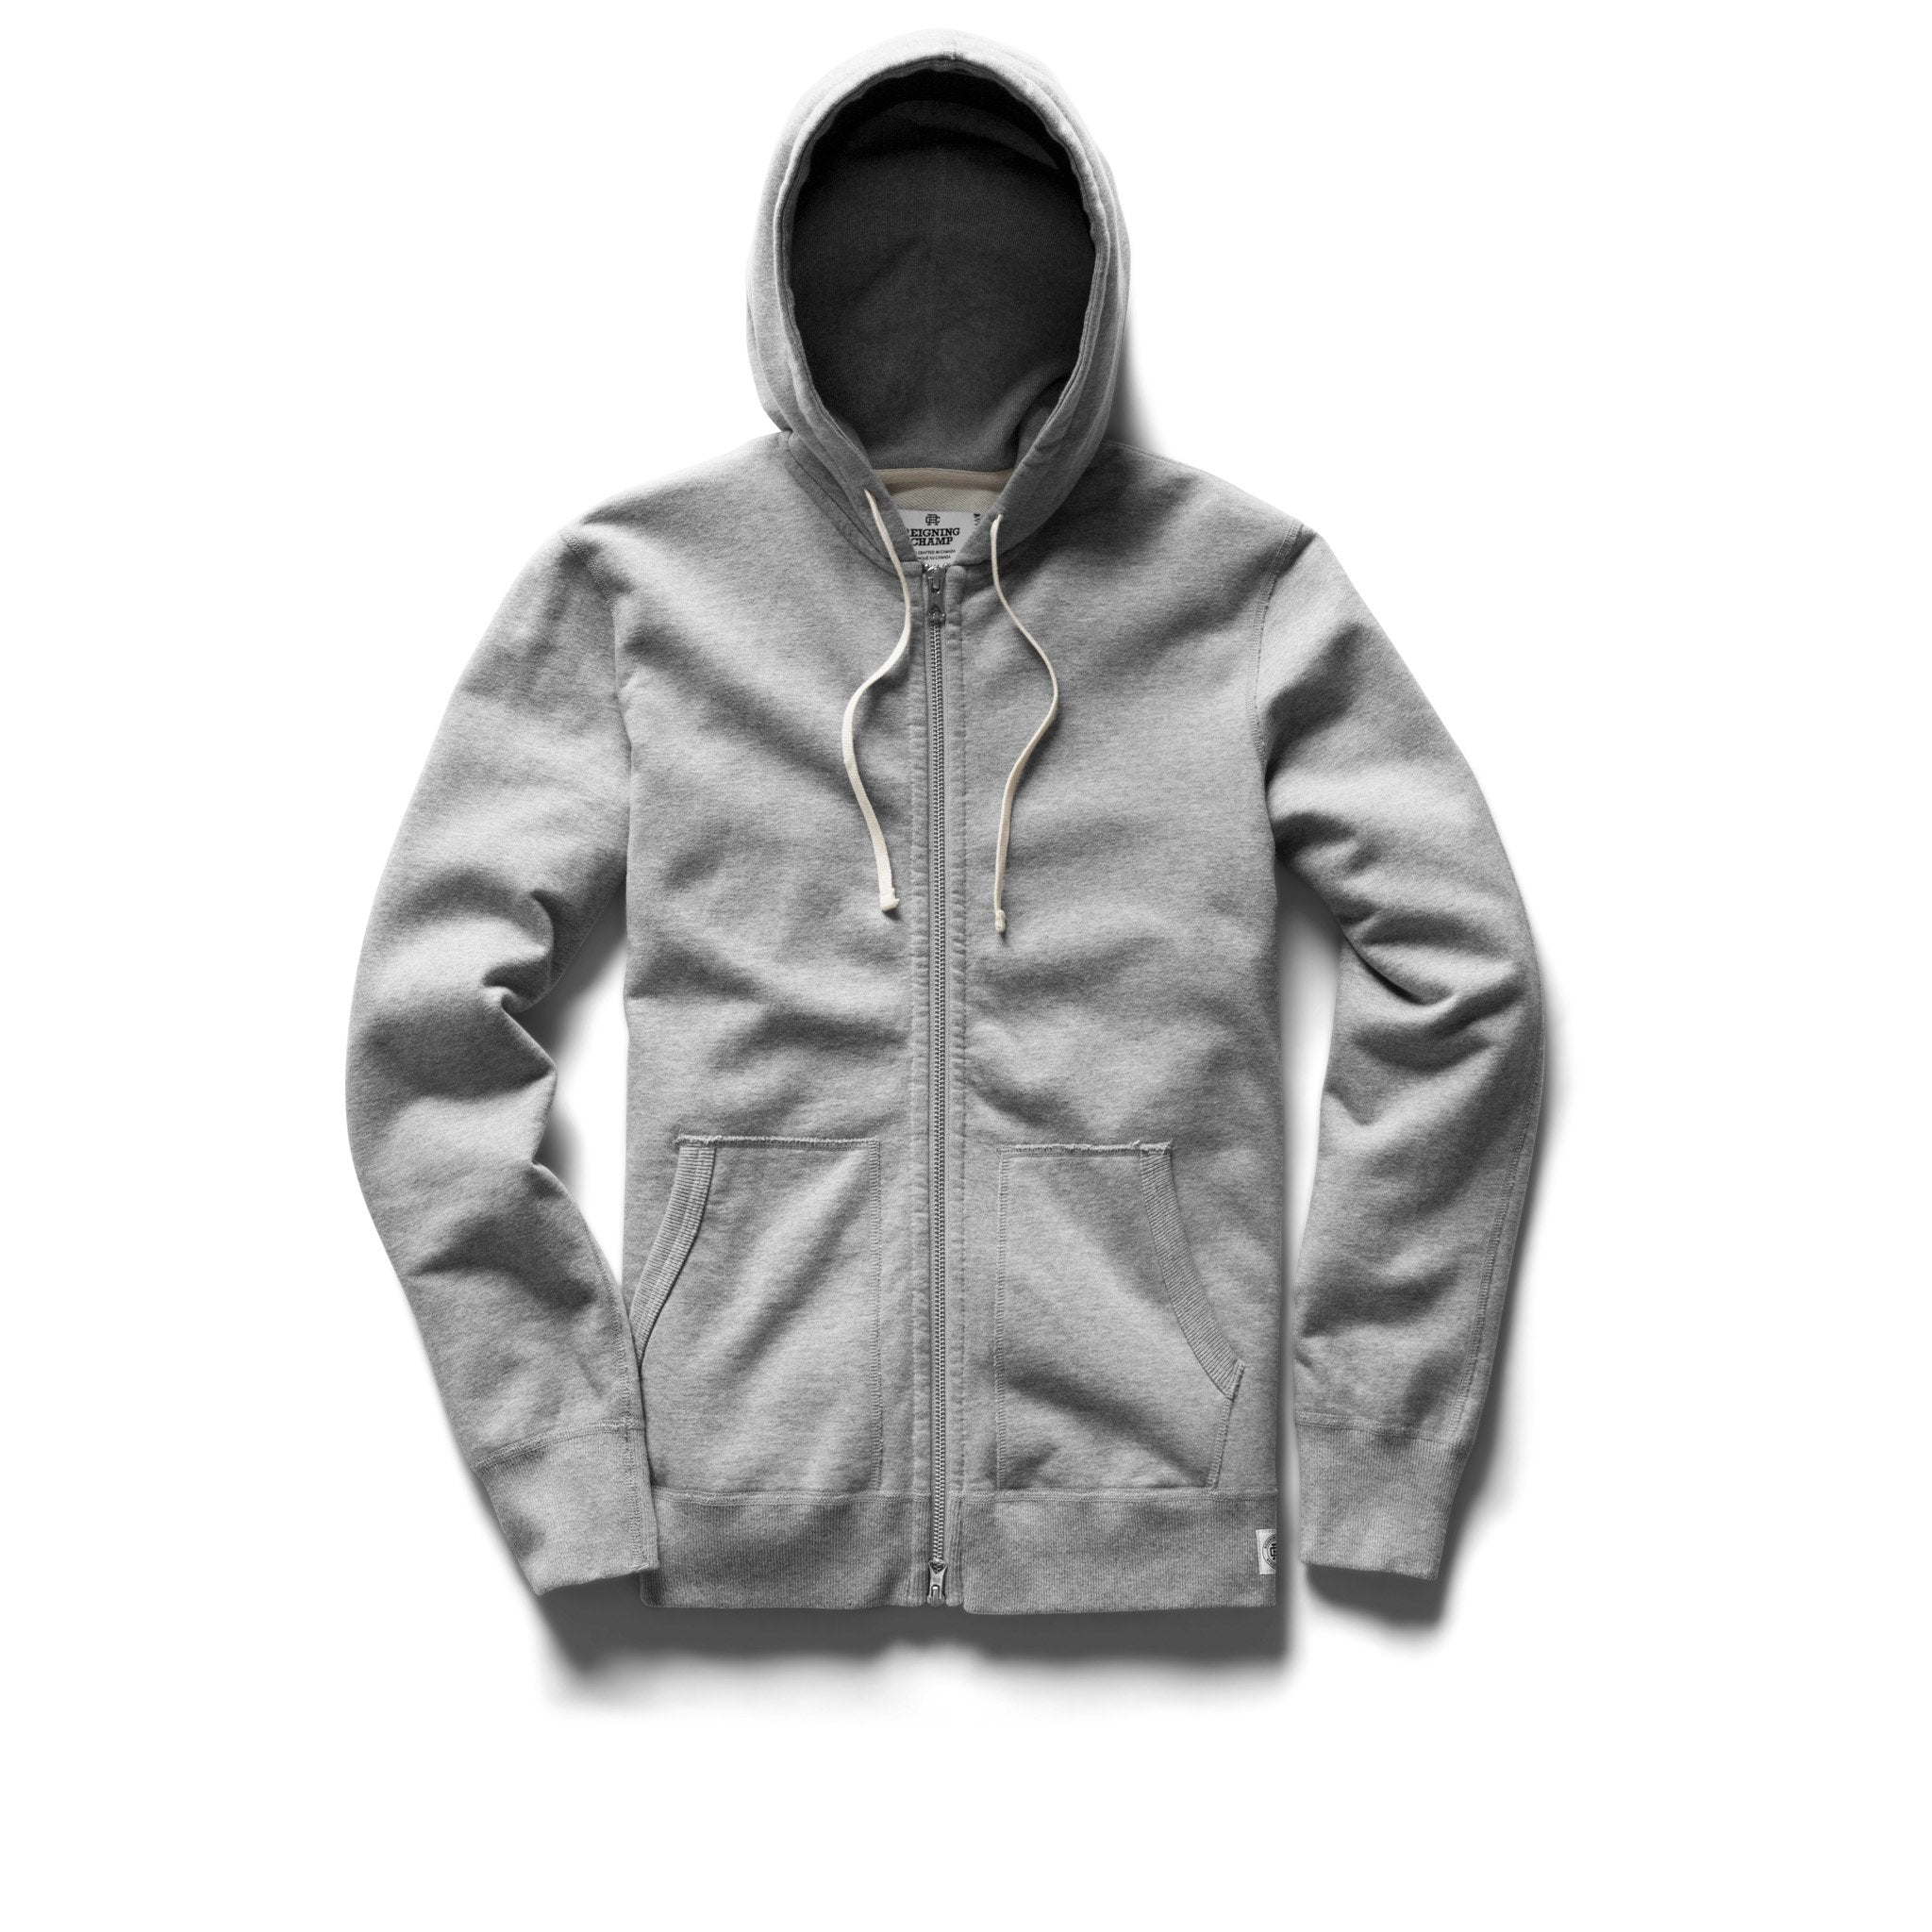 REIGNING CHAMP M'S HOODIES HEATHER GREY XL FULL ZIP HOODIE